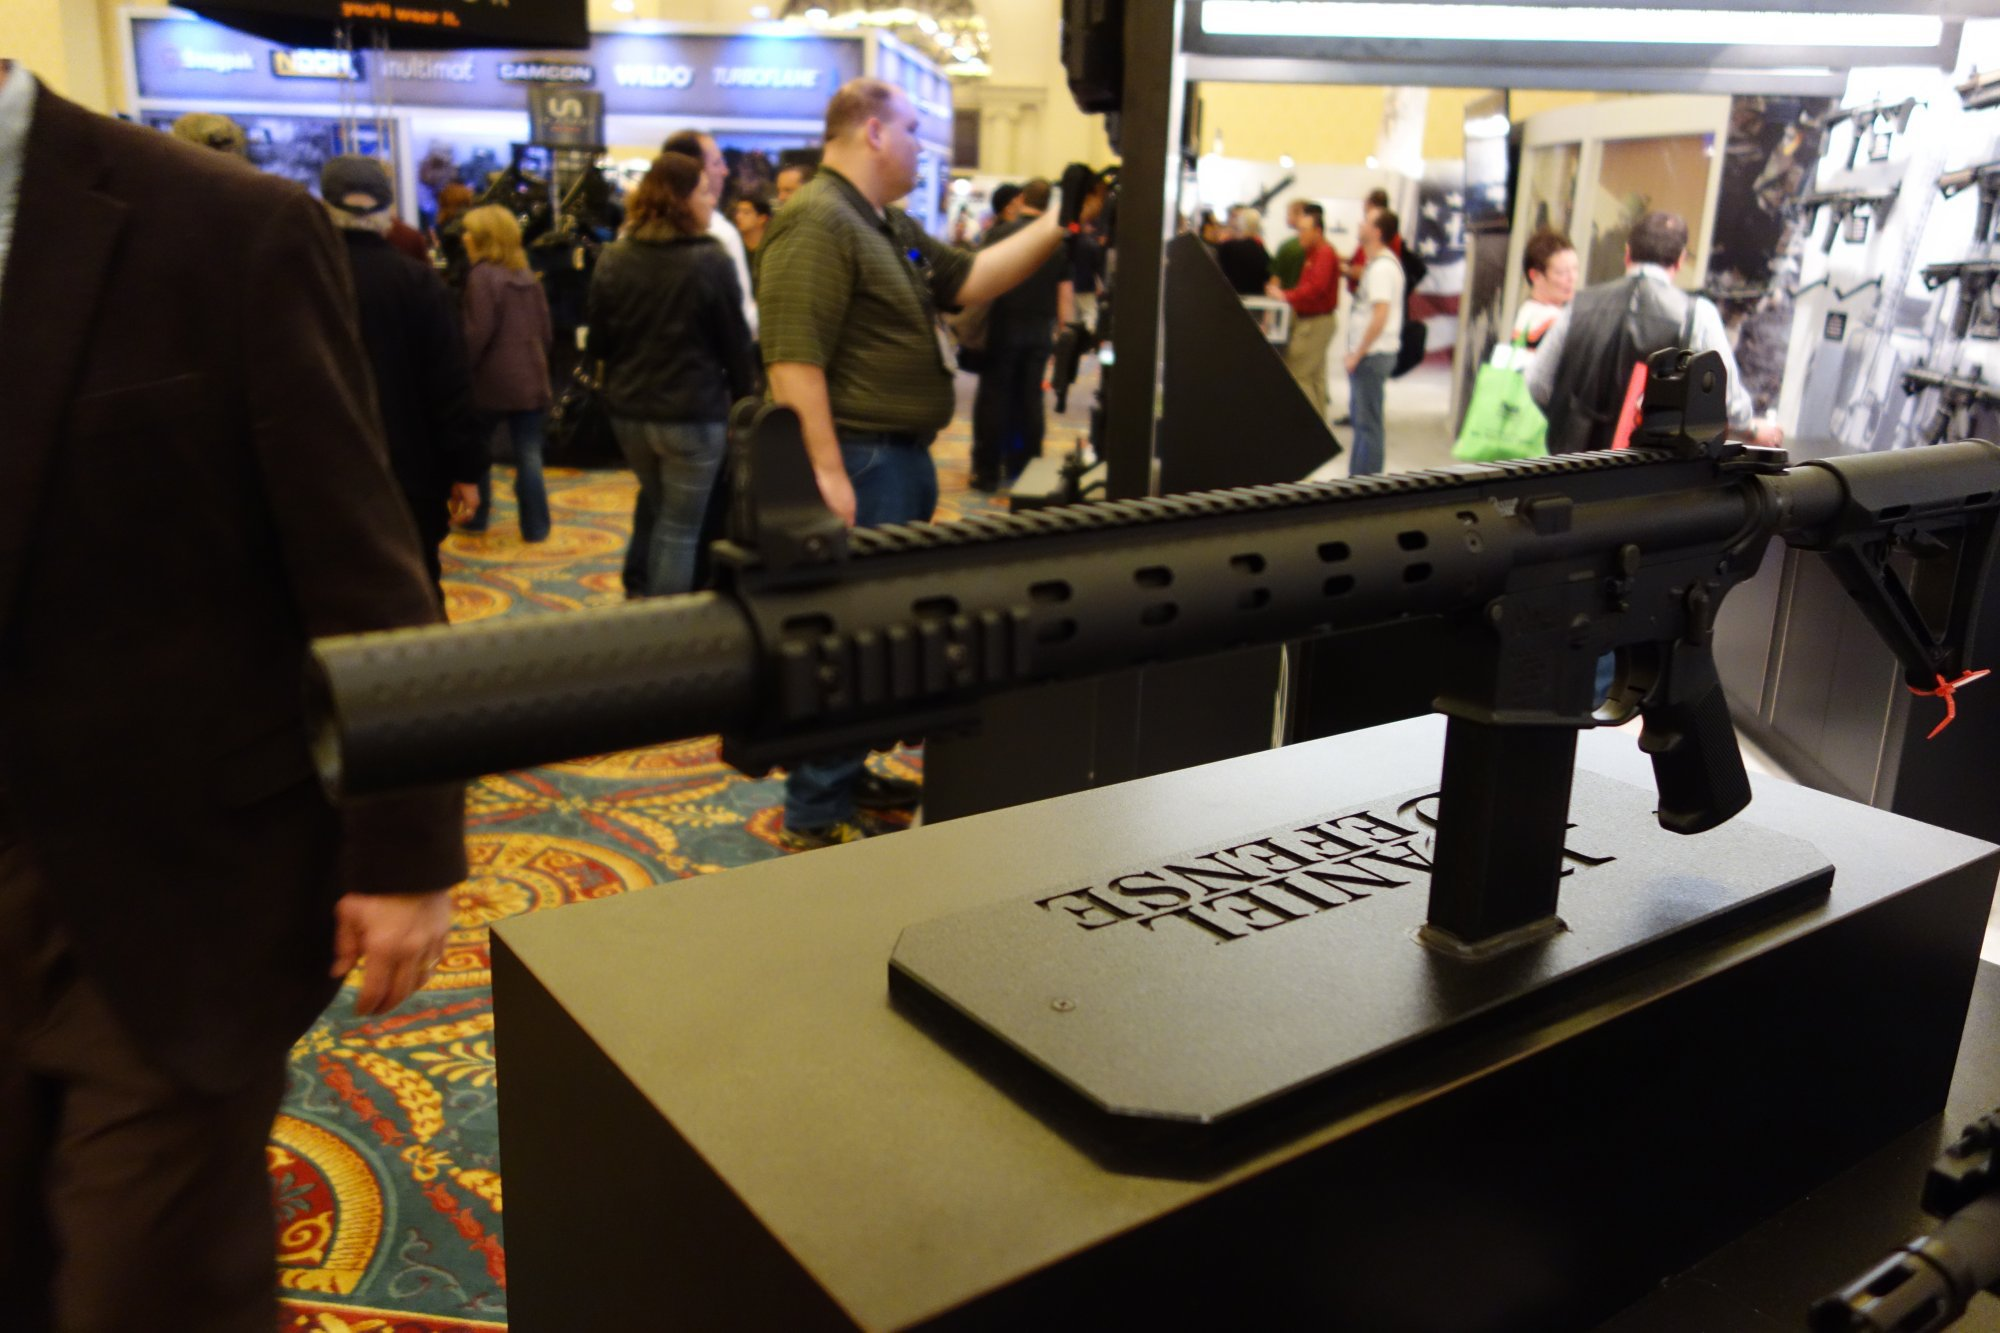 Daniel Defense DD M4 Carbine DDM4v7 ISR 300 Blackout Integrally Suppressed Rifle 10.3 inch Tactical AR 15 Short Barreled Rifle AR SBR SHOT Show 2013 David Crane DefenseReview.com DR 2 Daniel Defense DD M4 Carbine ISR 300 Blackout (Integrally Suppressed Rifle 300BLK): DDM4v7 type 10.3 Barreled Tactical AR 15 Short Barreled Rifle (SBR) (Video!)